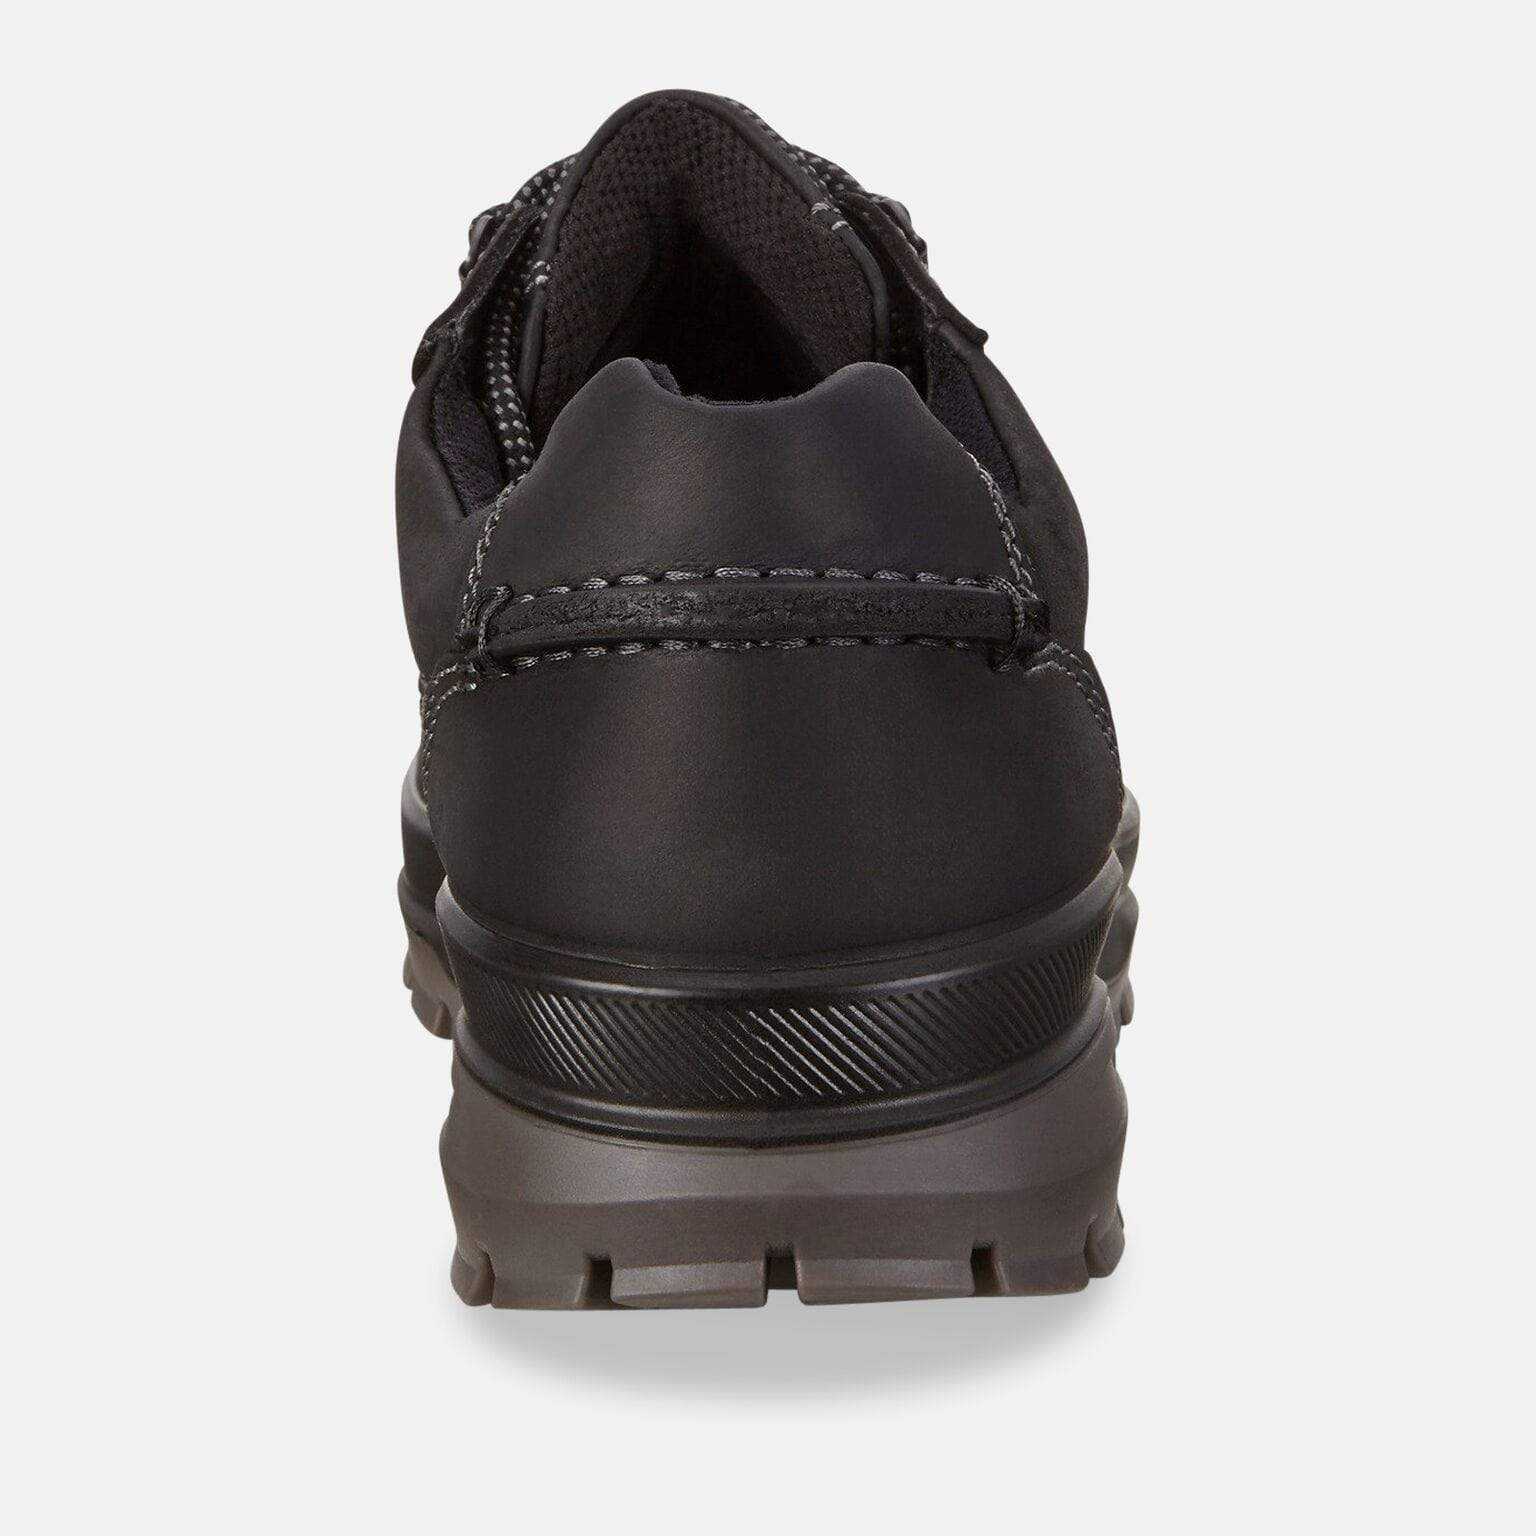 Ecco Footwear Rugged Track 838004-02001 Black Oil Nubuck